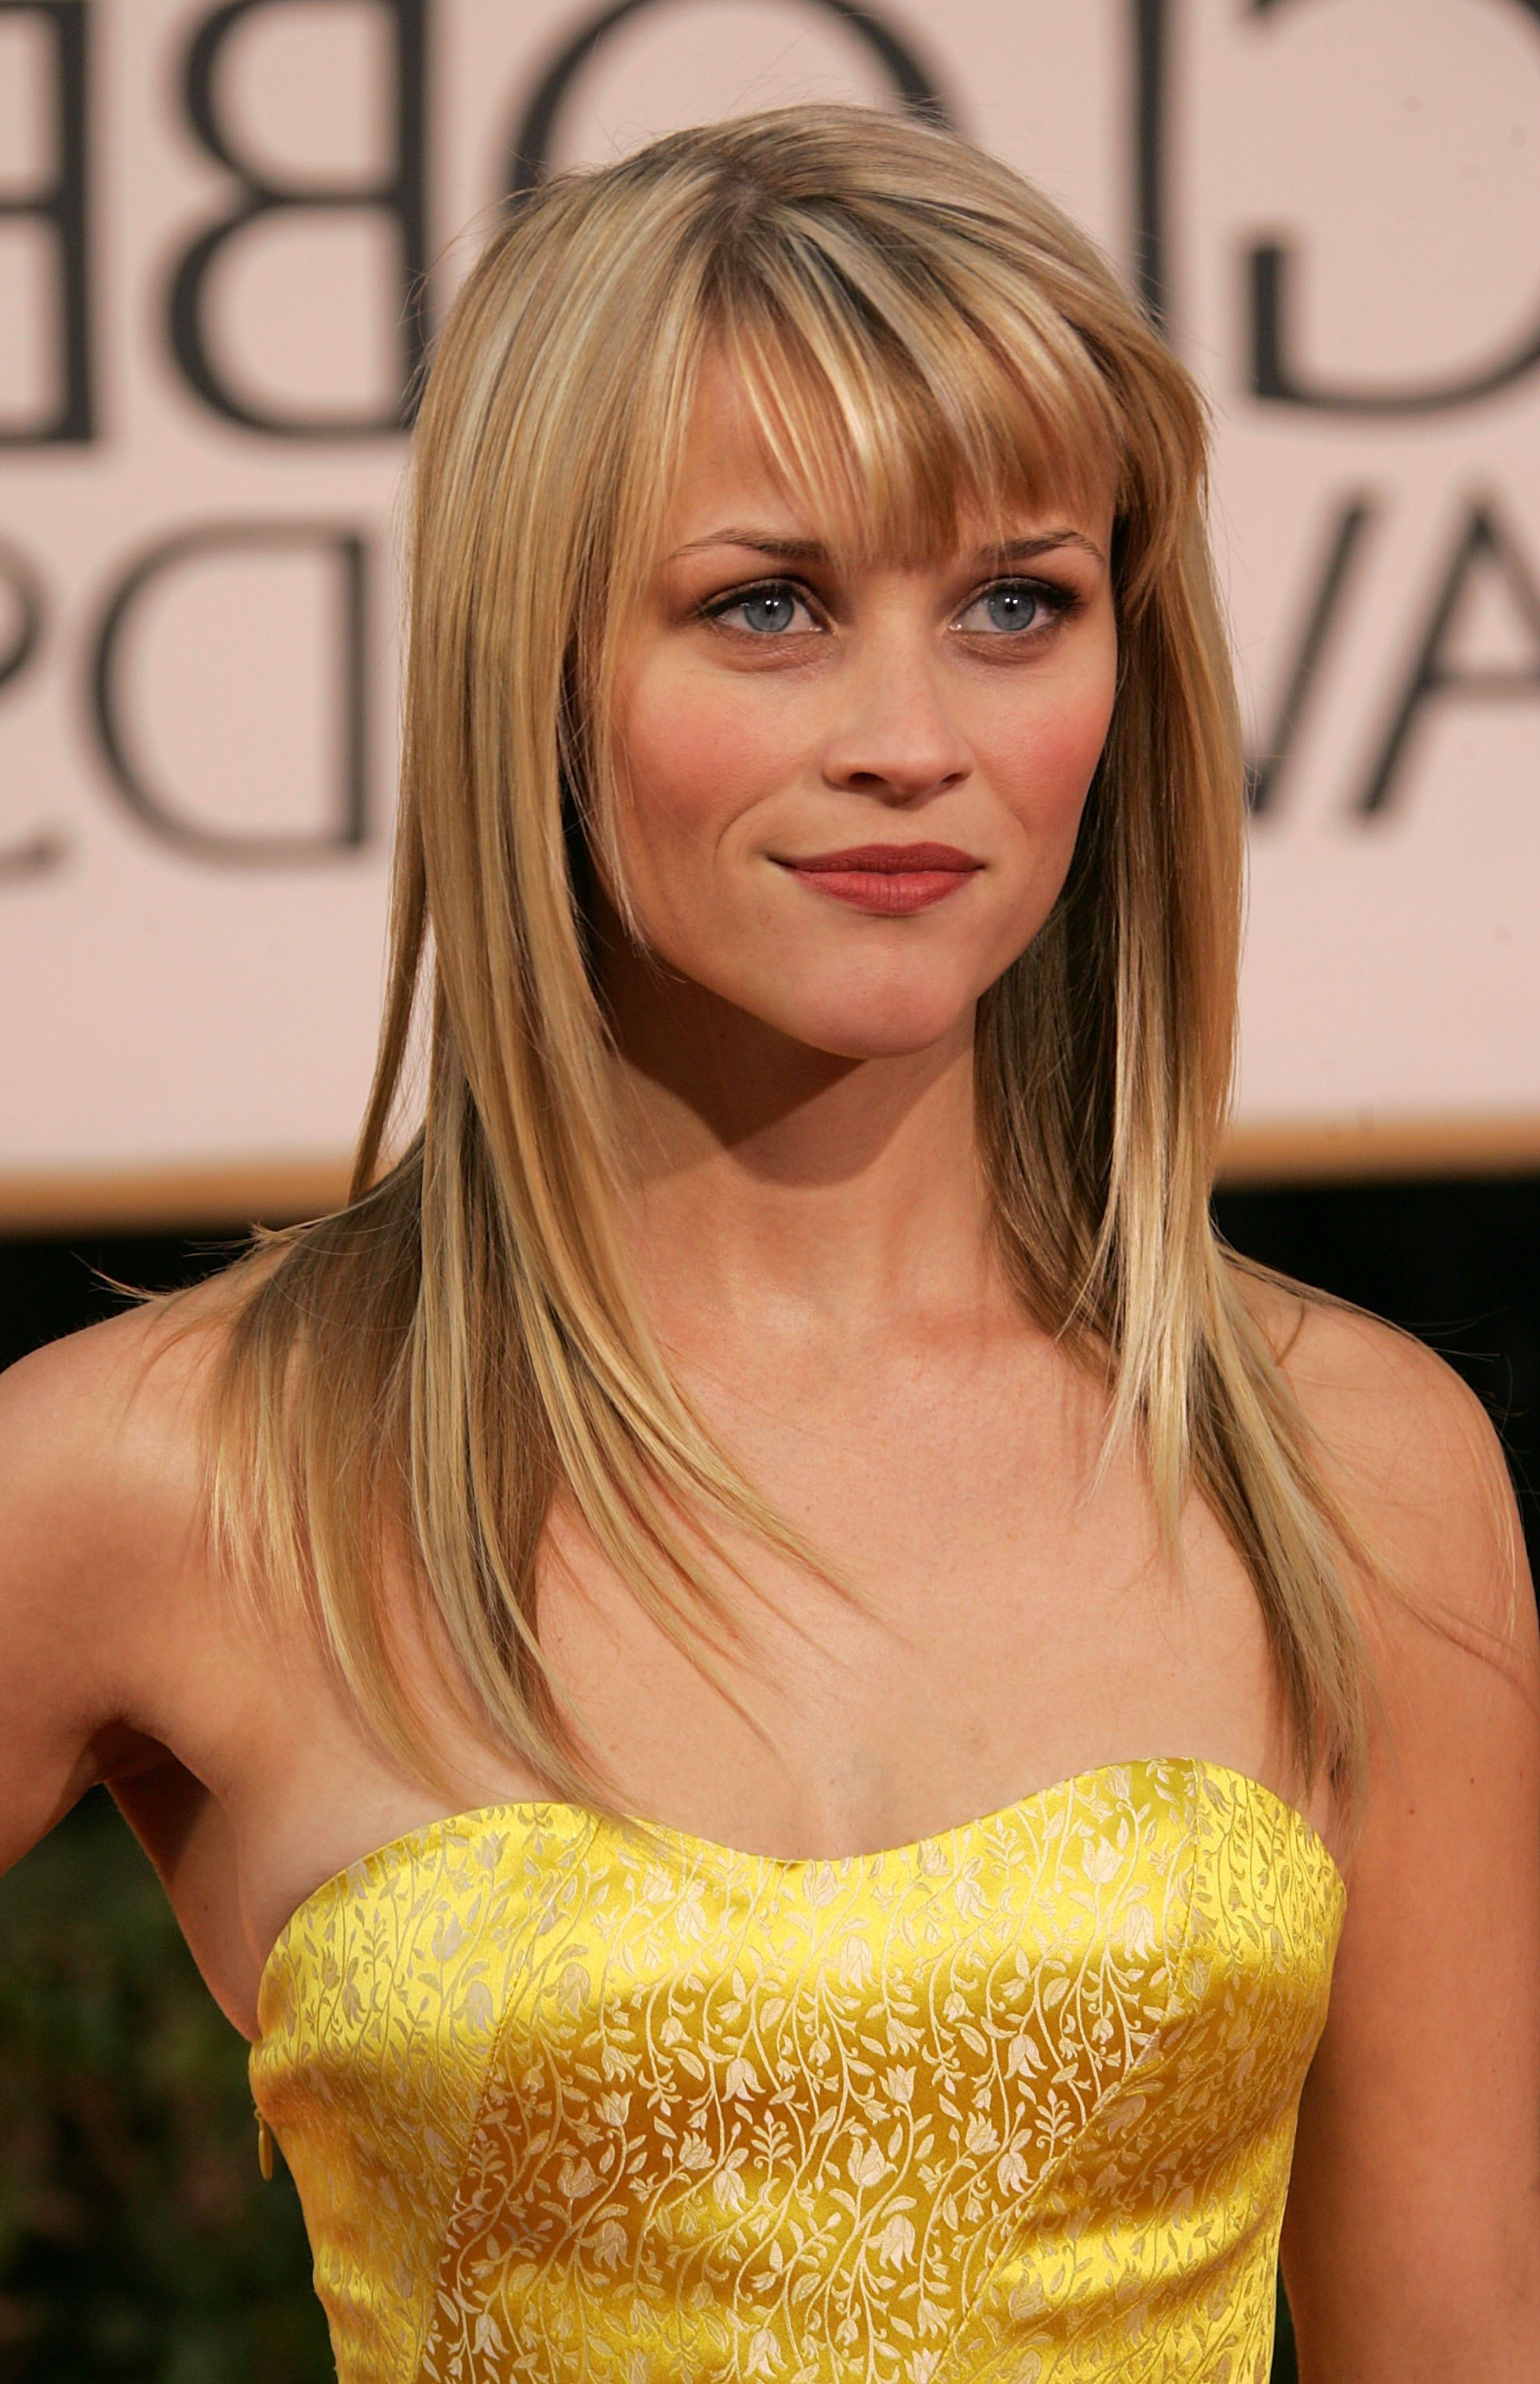 19 Side Fringe Hairstyles For 2019 – Celebrity Inspiration Pertaining To Most Recent Medium Haircuts With Side Fringe (View 3 of 20)